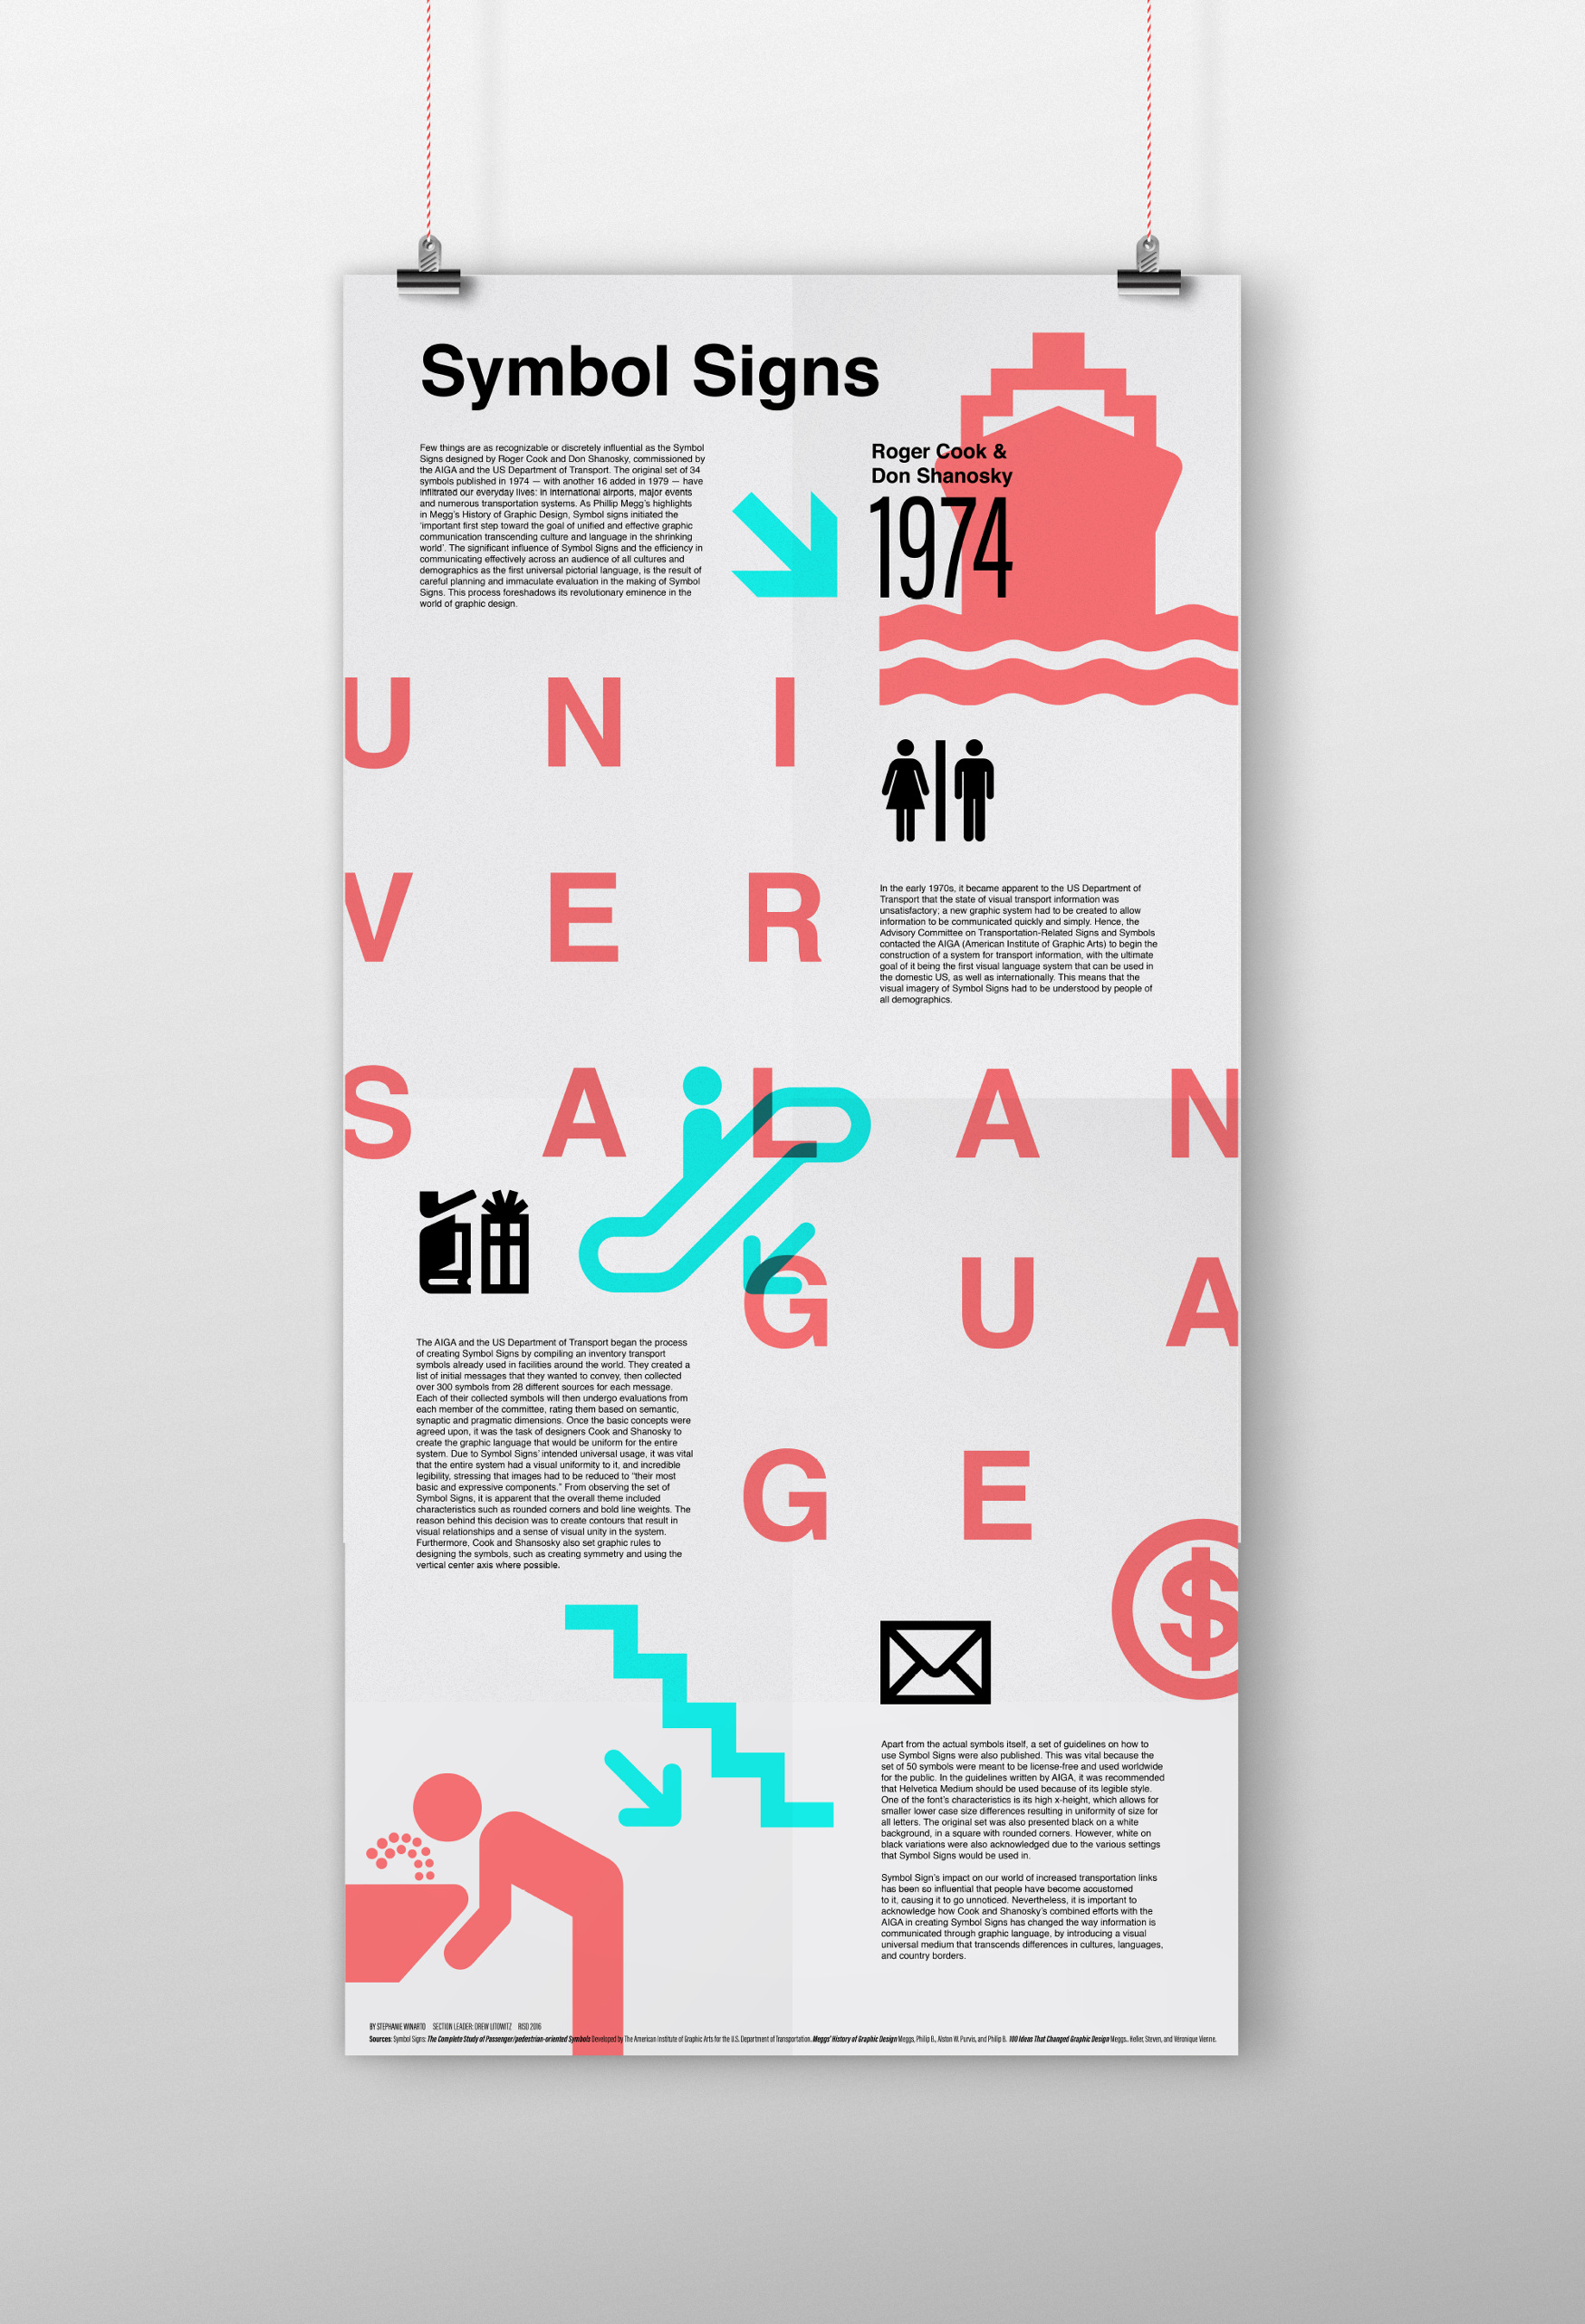 poster and essay on the set of symbol signs created by roger cook and don shanosky for the aiga and the us department of transportation risd graphic design